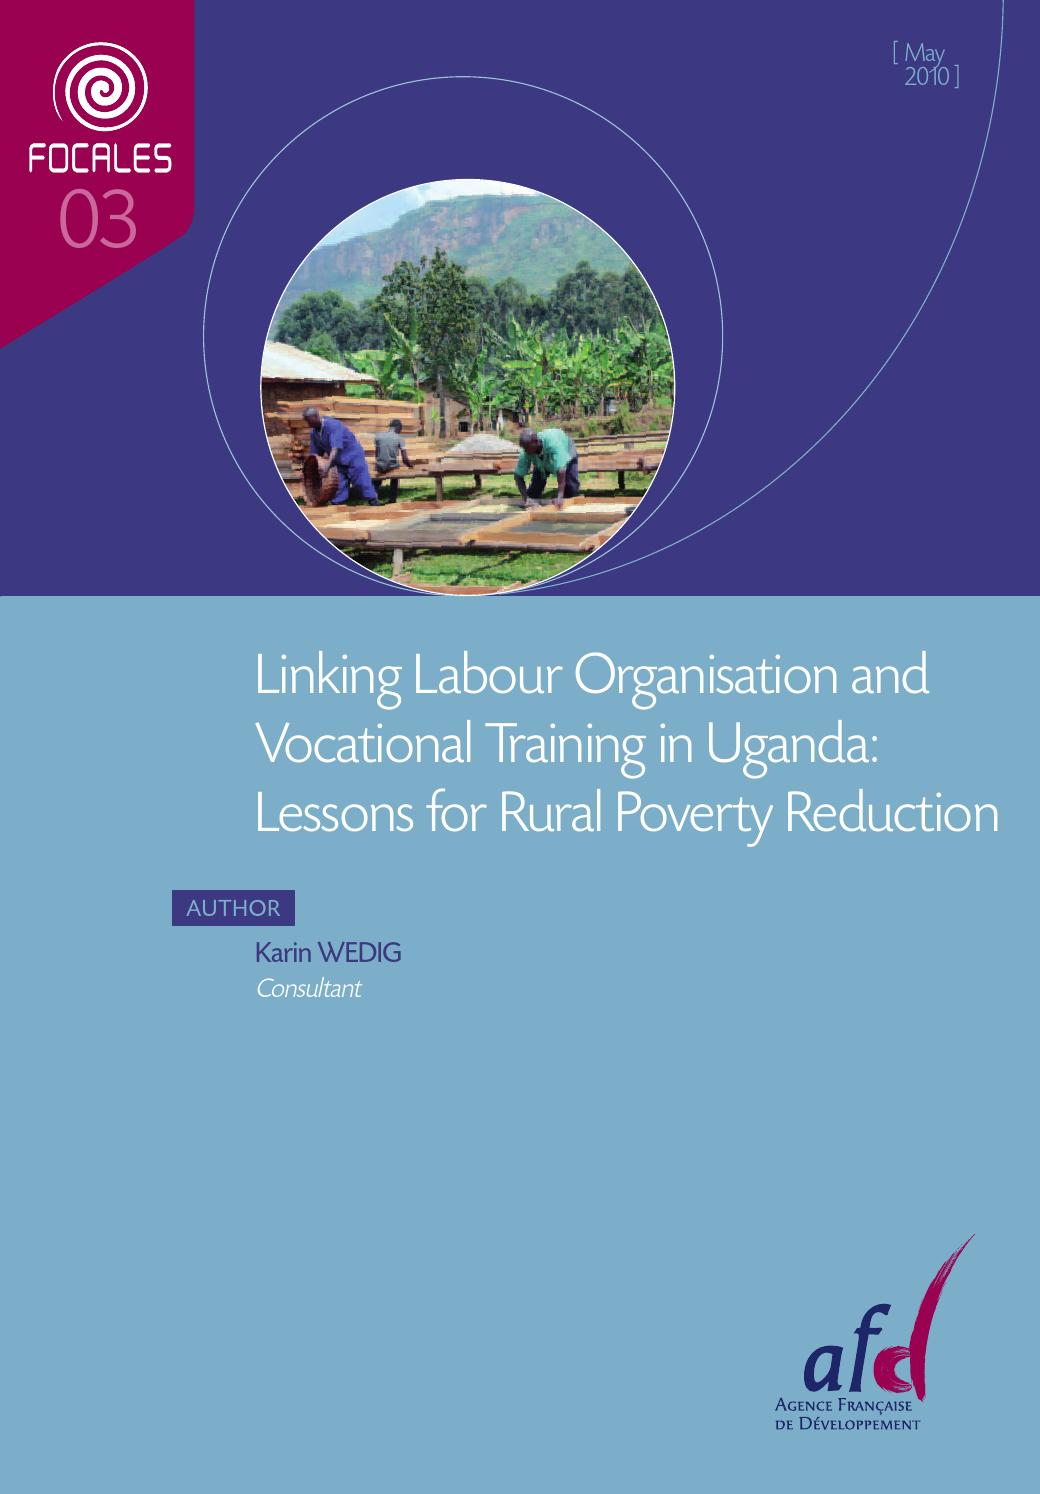 Linking Labour Organisation and Vocational Training in